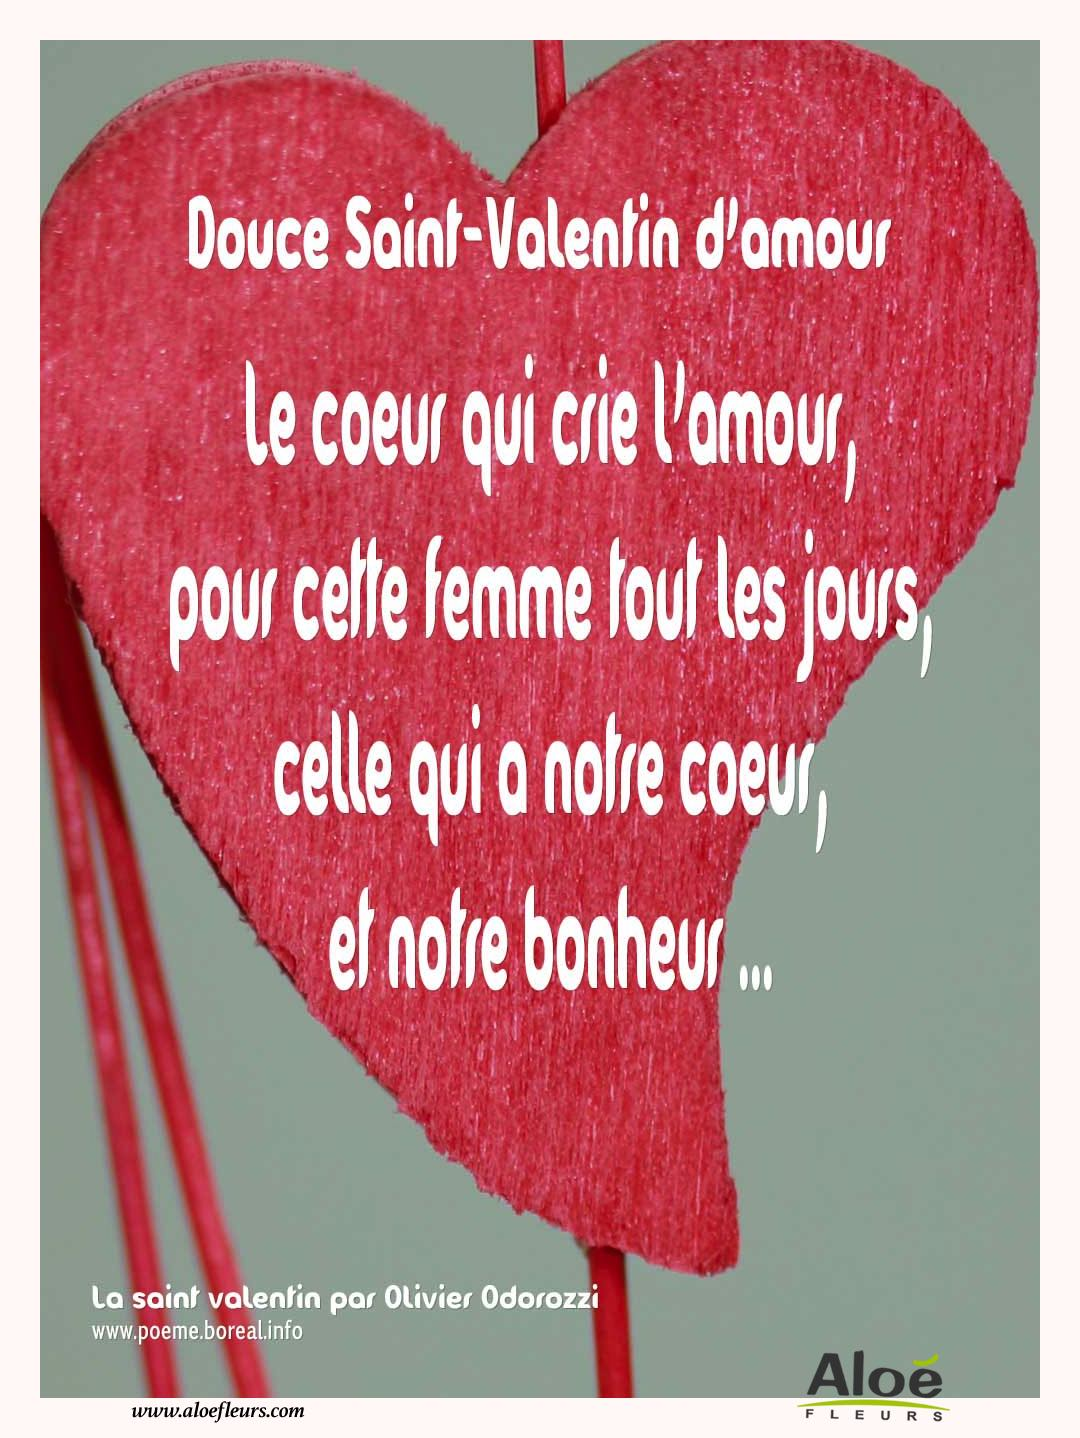 Citations D'amour Et Saint Valentin  Douce Saint Valentin D'amour